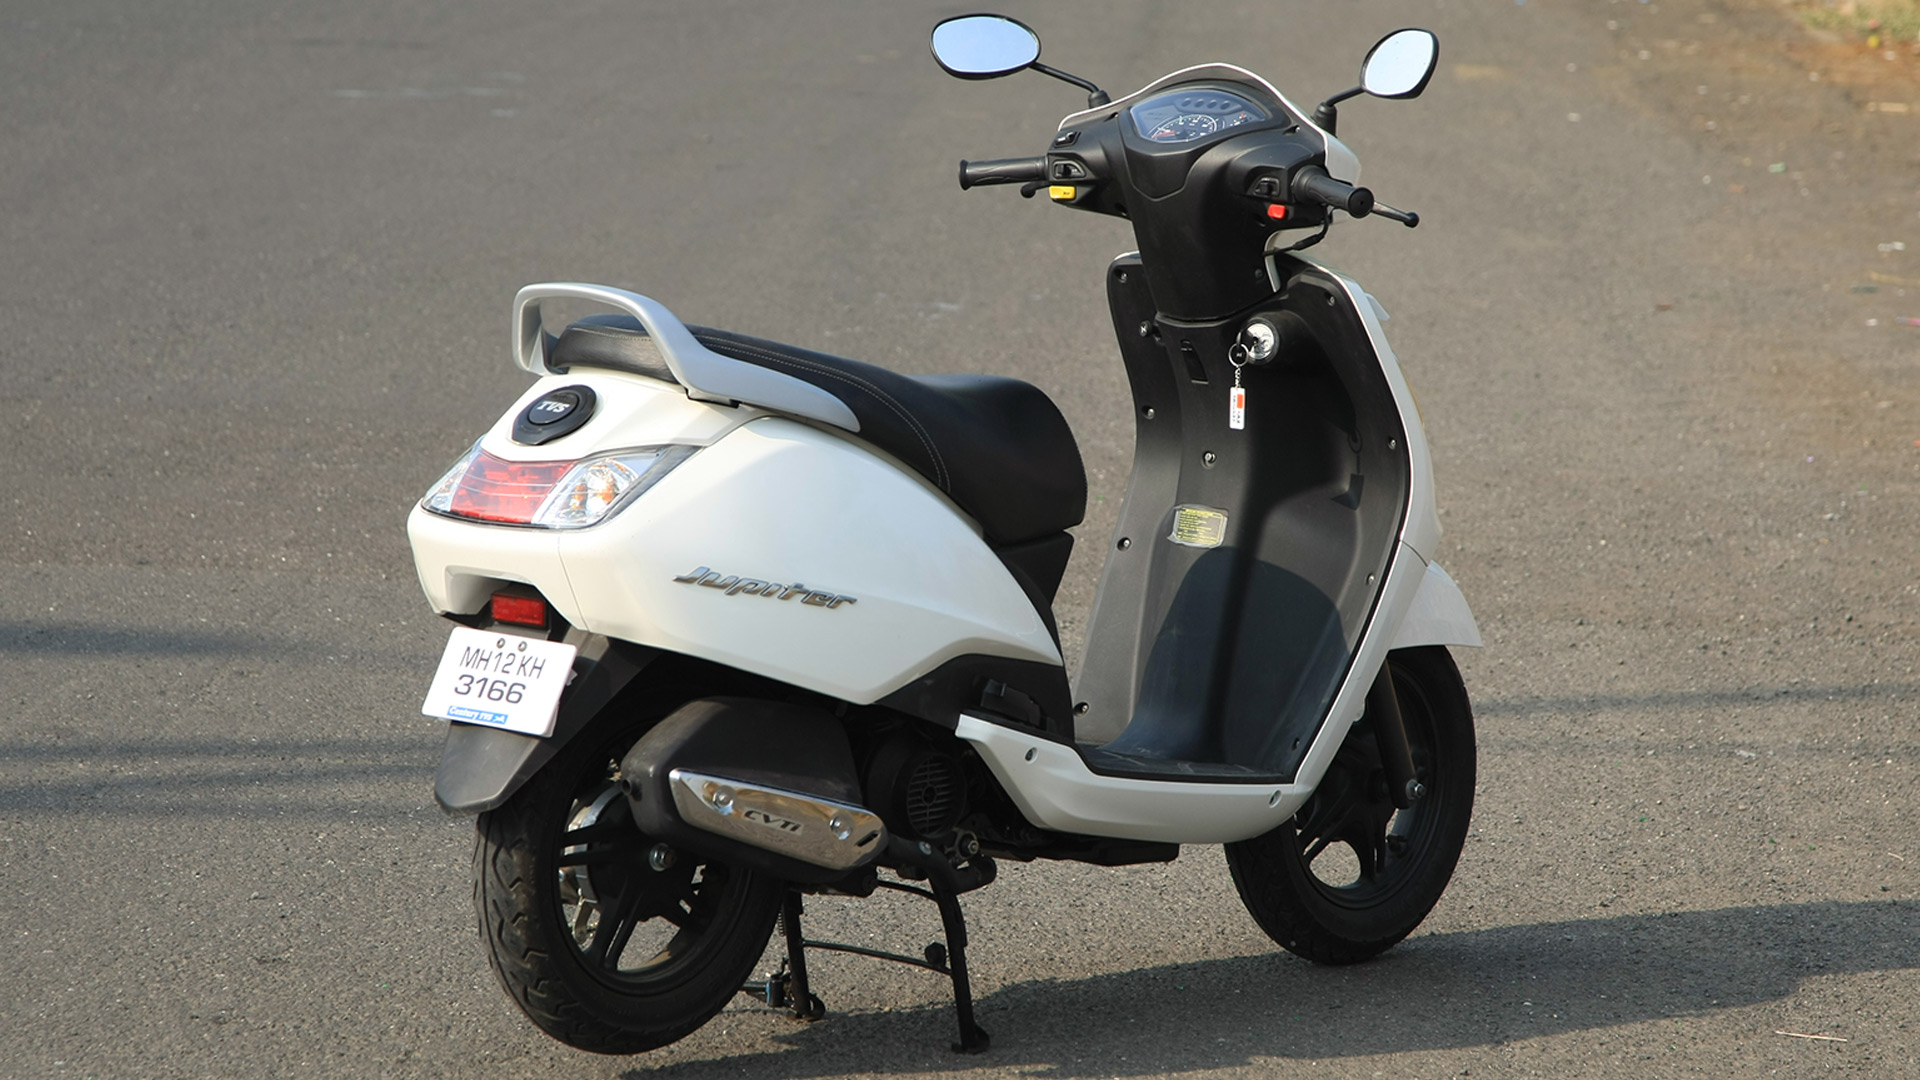 Tvs Jupiter 2015 Zx Price Mileage Reviews